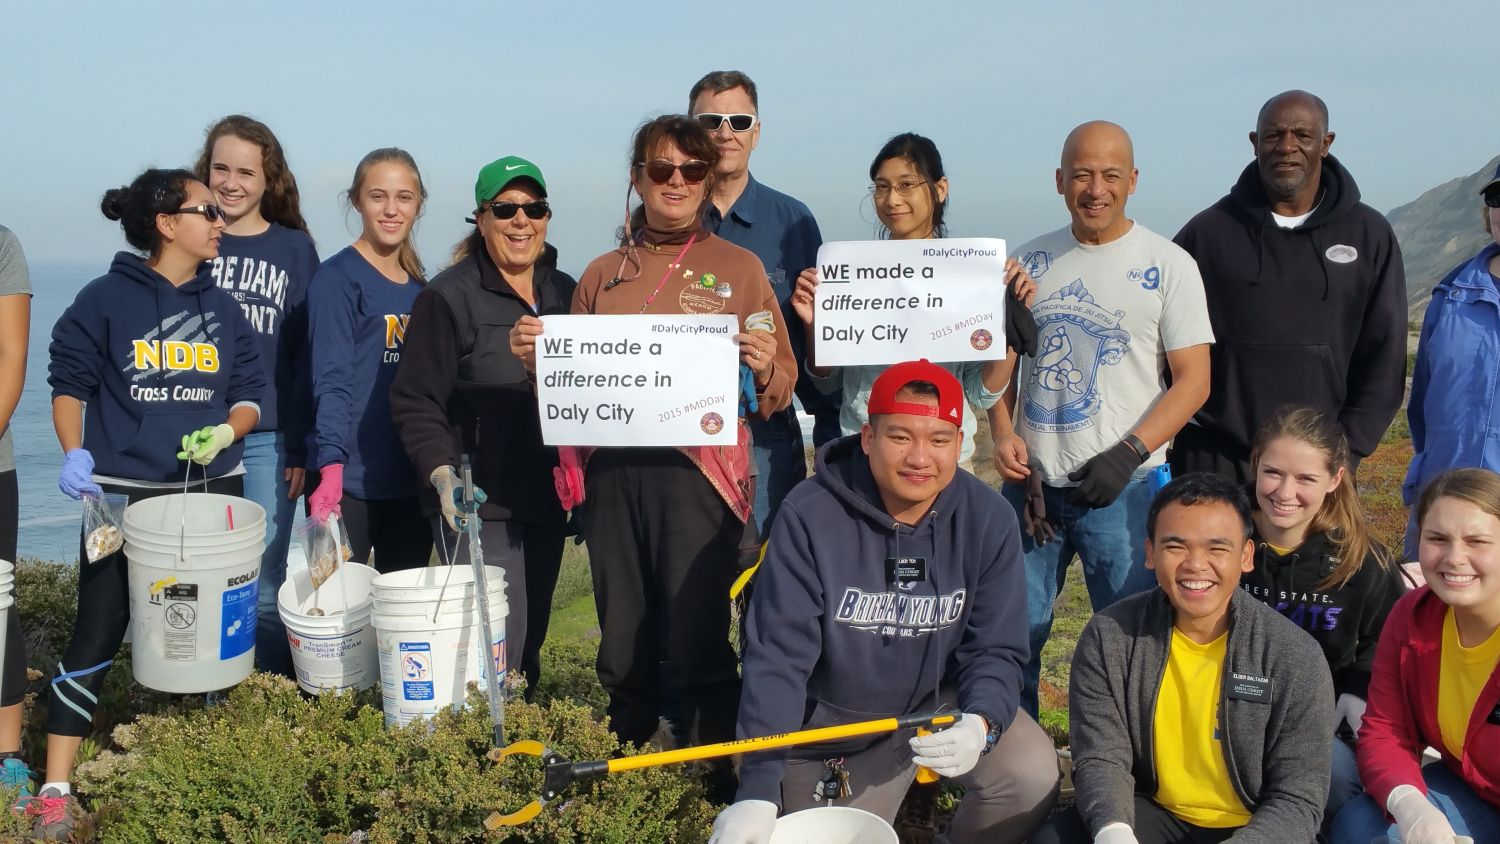 Make a Difference Day 2015 Oct 24